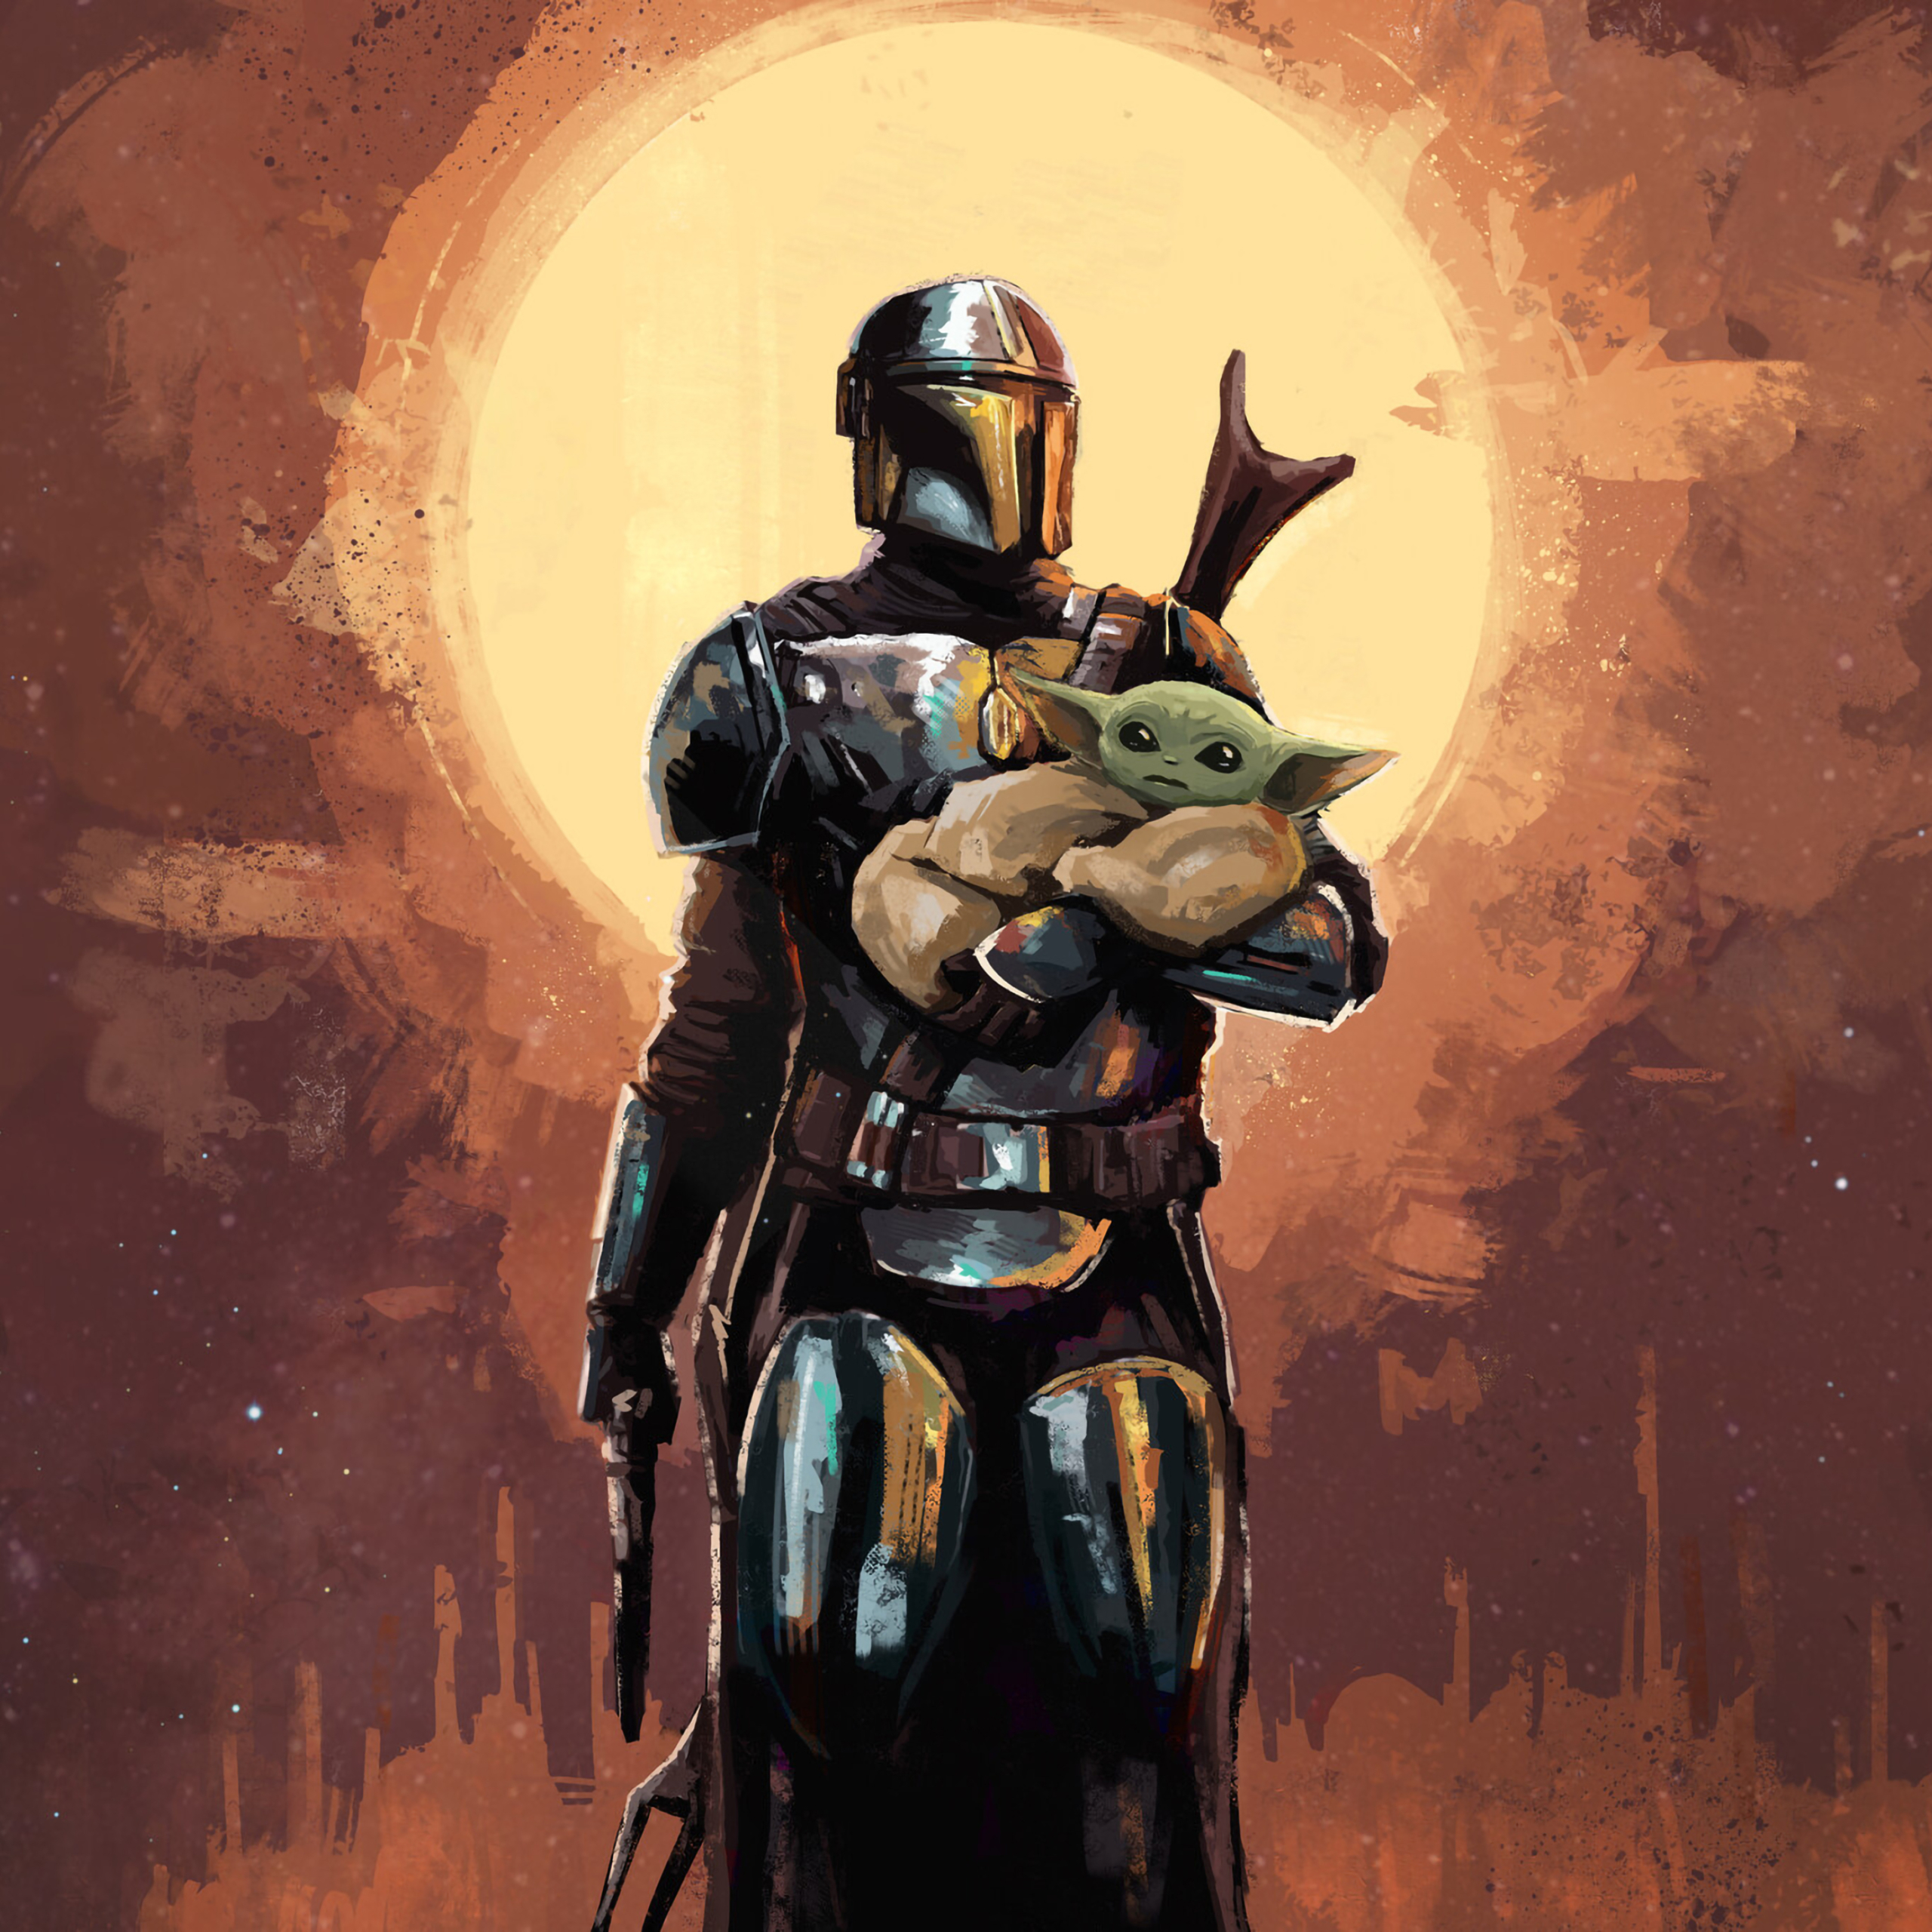 wallpapersden.com the mandalorian and baby yoda art 2932x2932 scaled